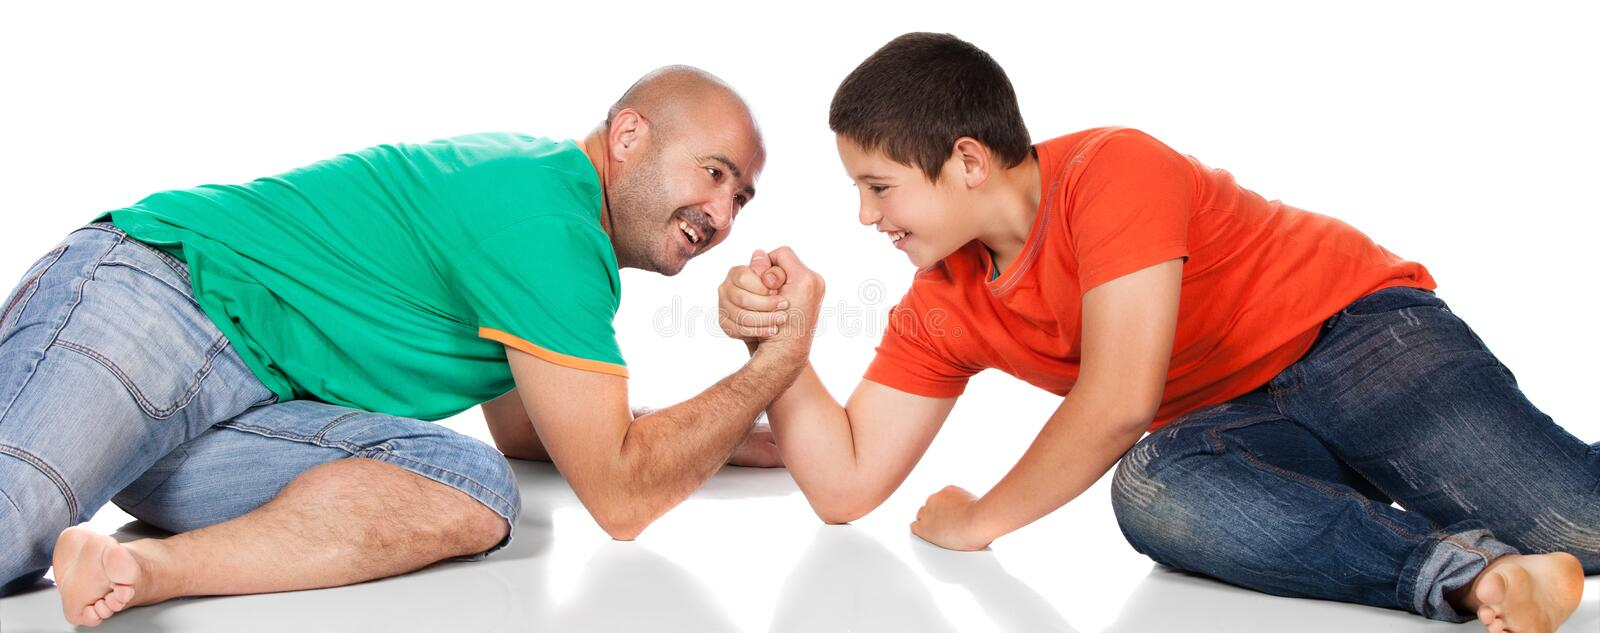 Father and son. Young caucasian boy wearing an orange t-shirt and blue jeans is playing arm wrestle with his father. The dad is wearing a green shirt royalty free stock photos